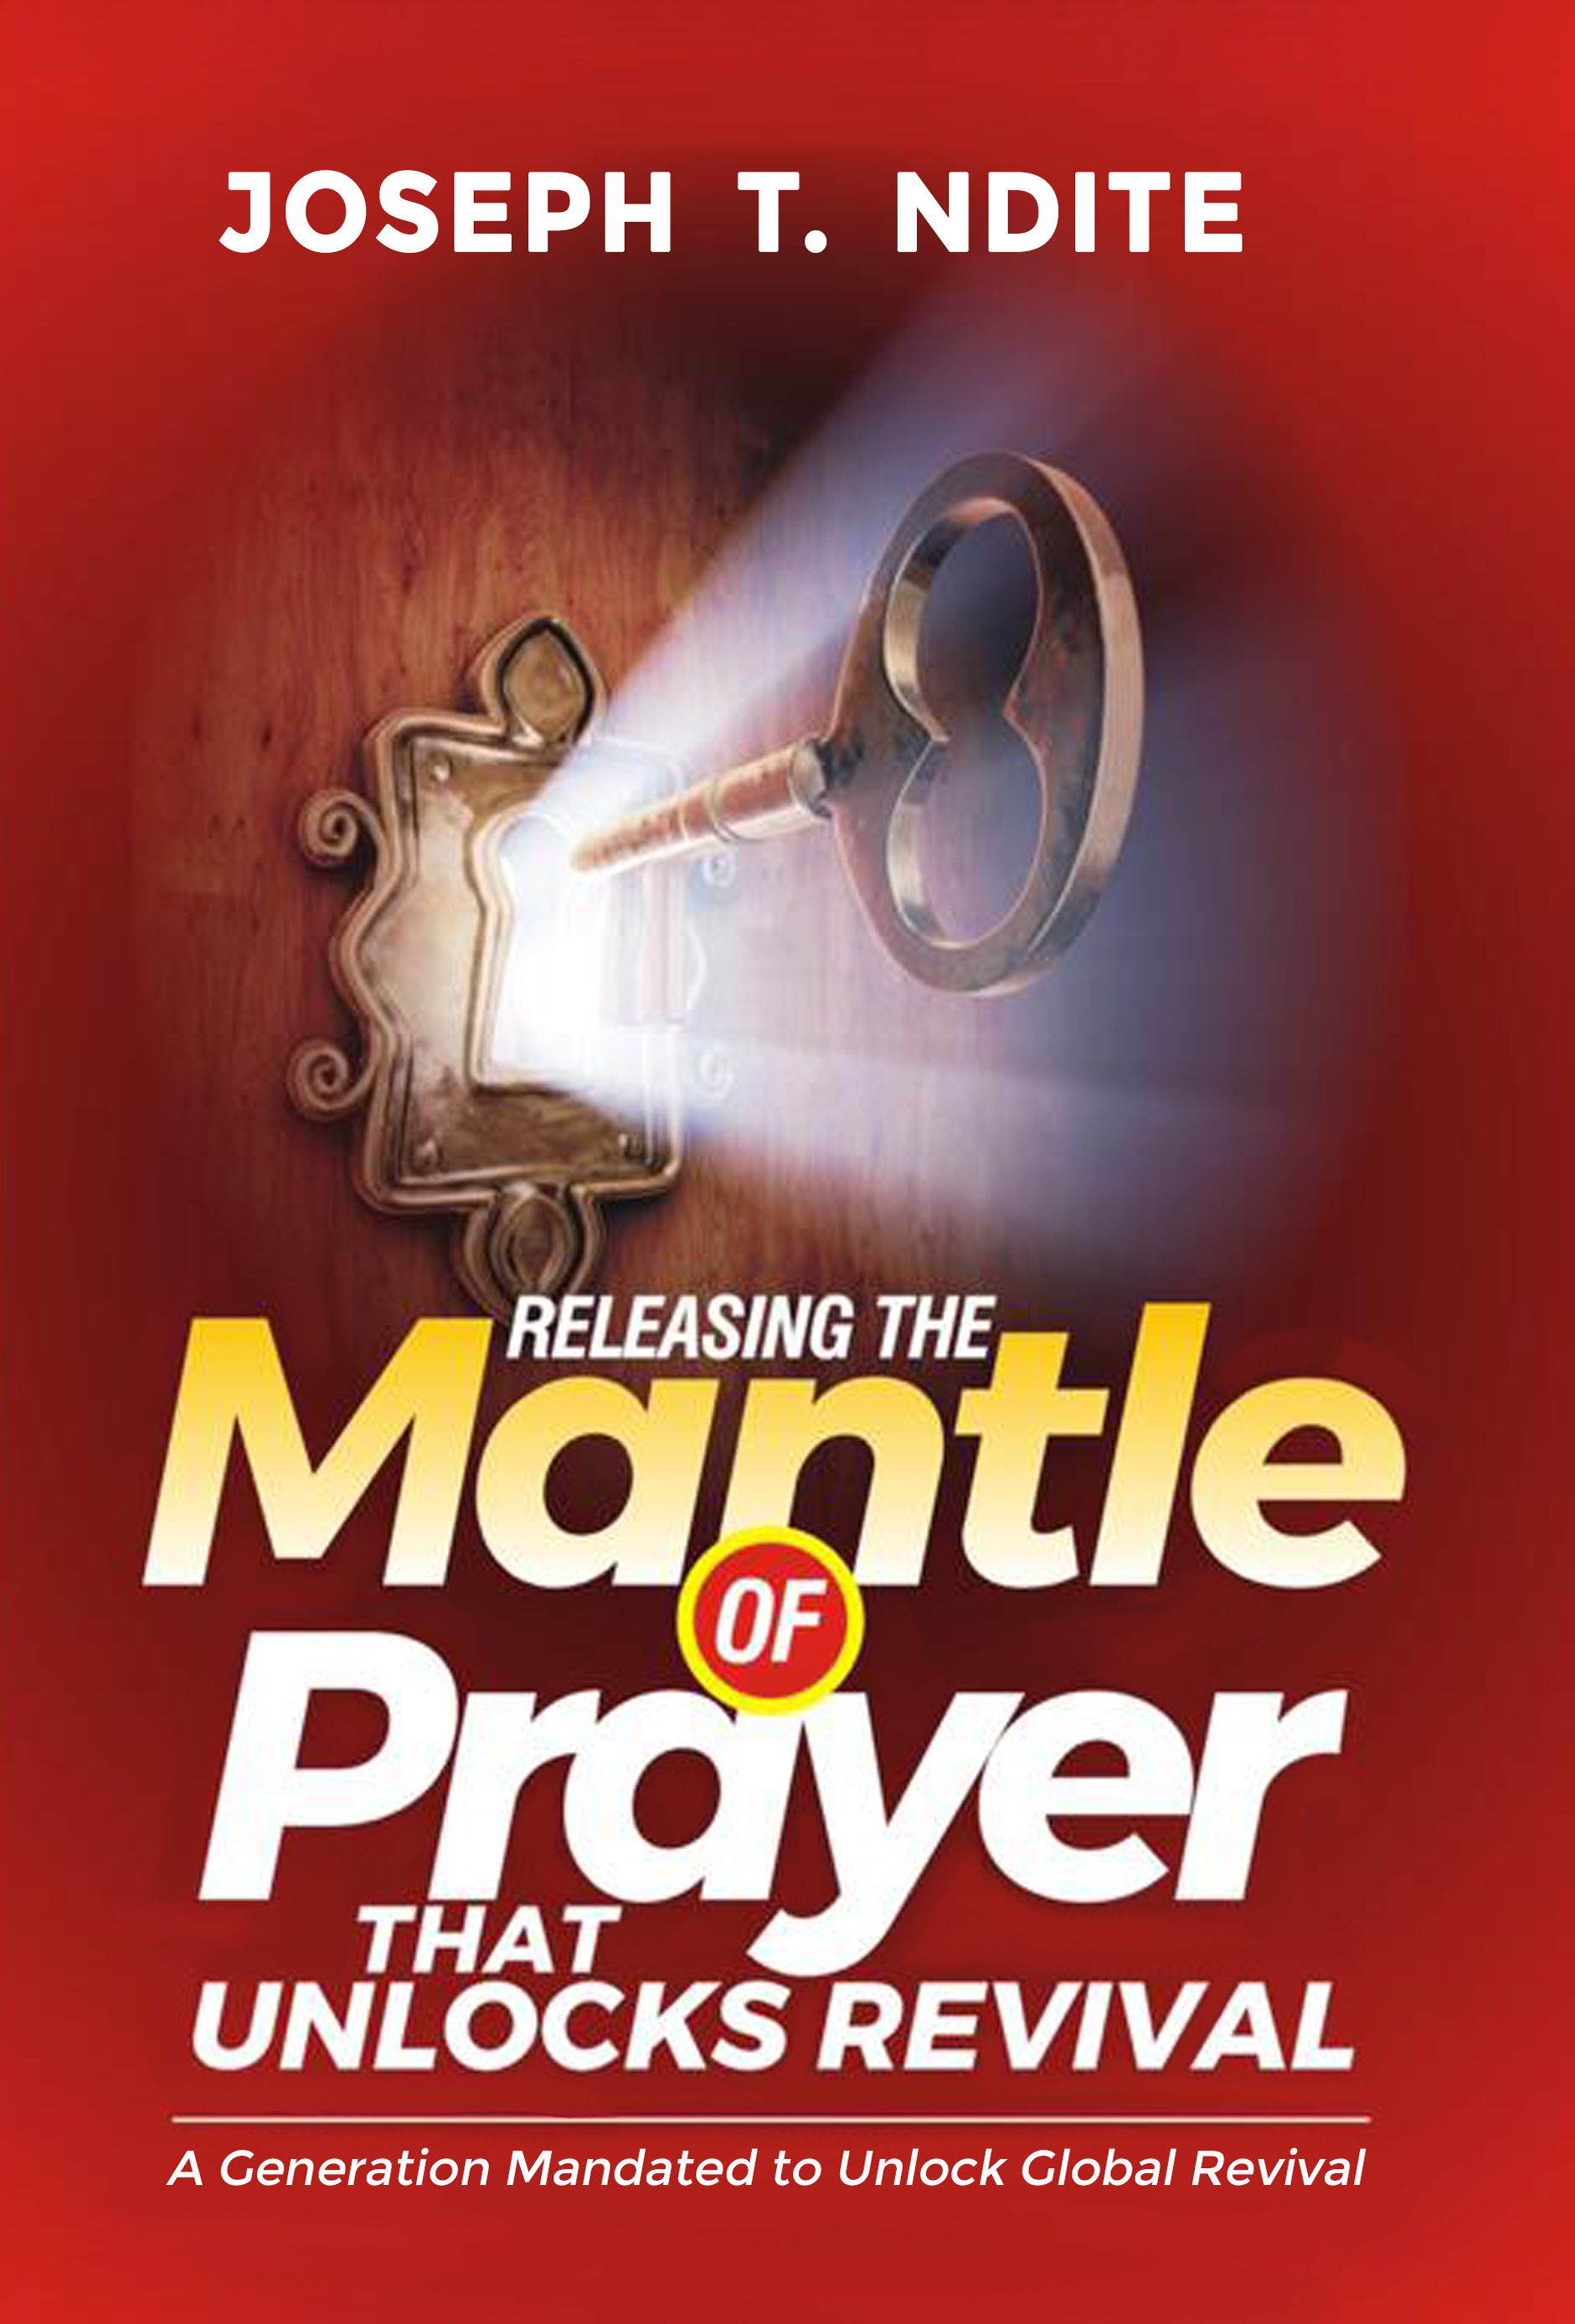 Releasing the mantle of prayer that unlocks revival: a generation mandated  to unlock global revival, an Ebook by Joseph T  Ndite